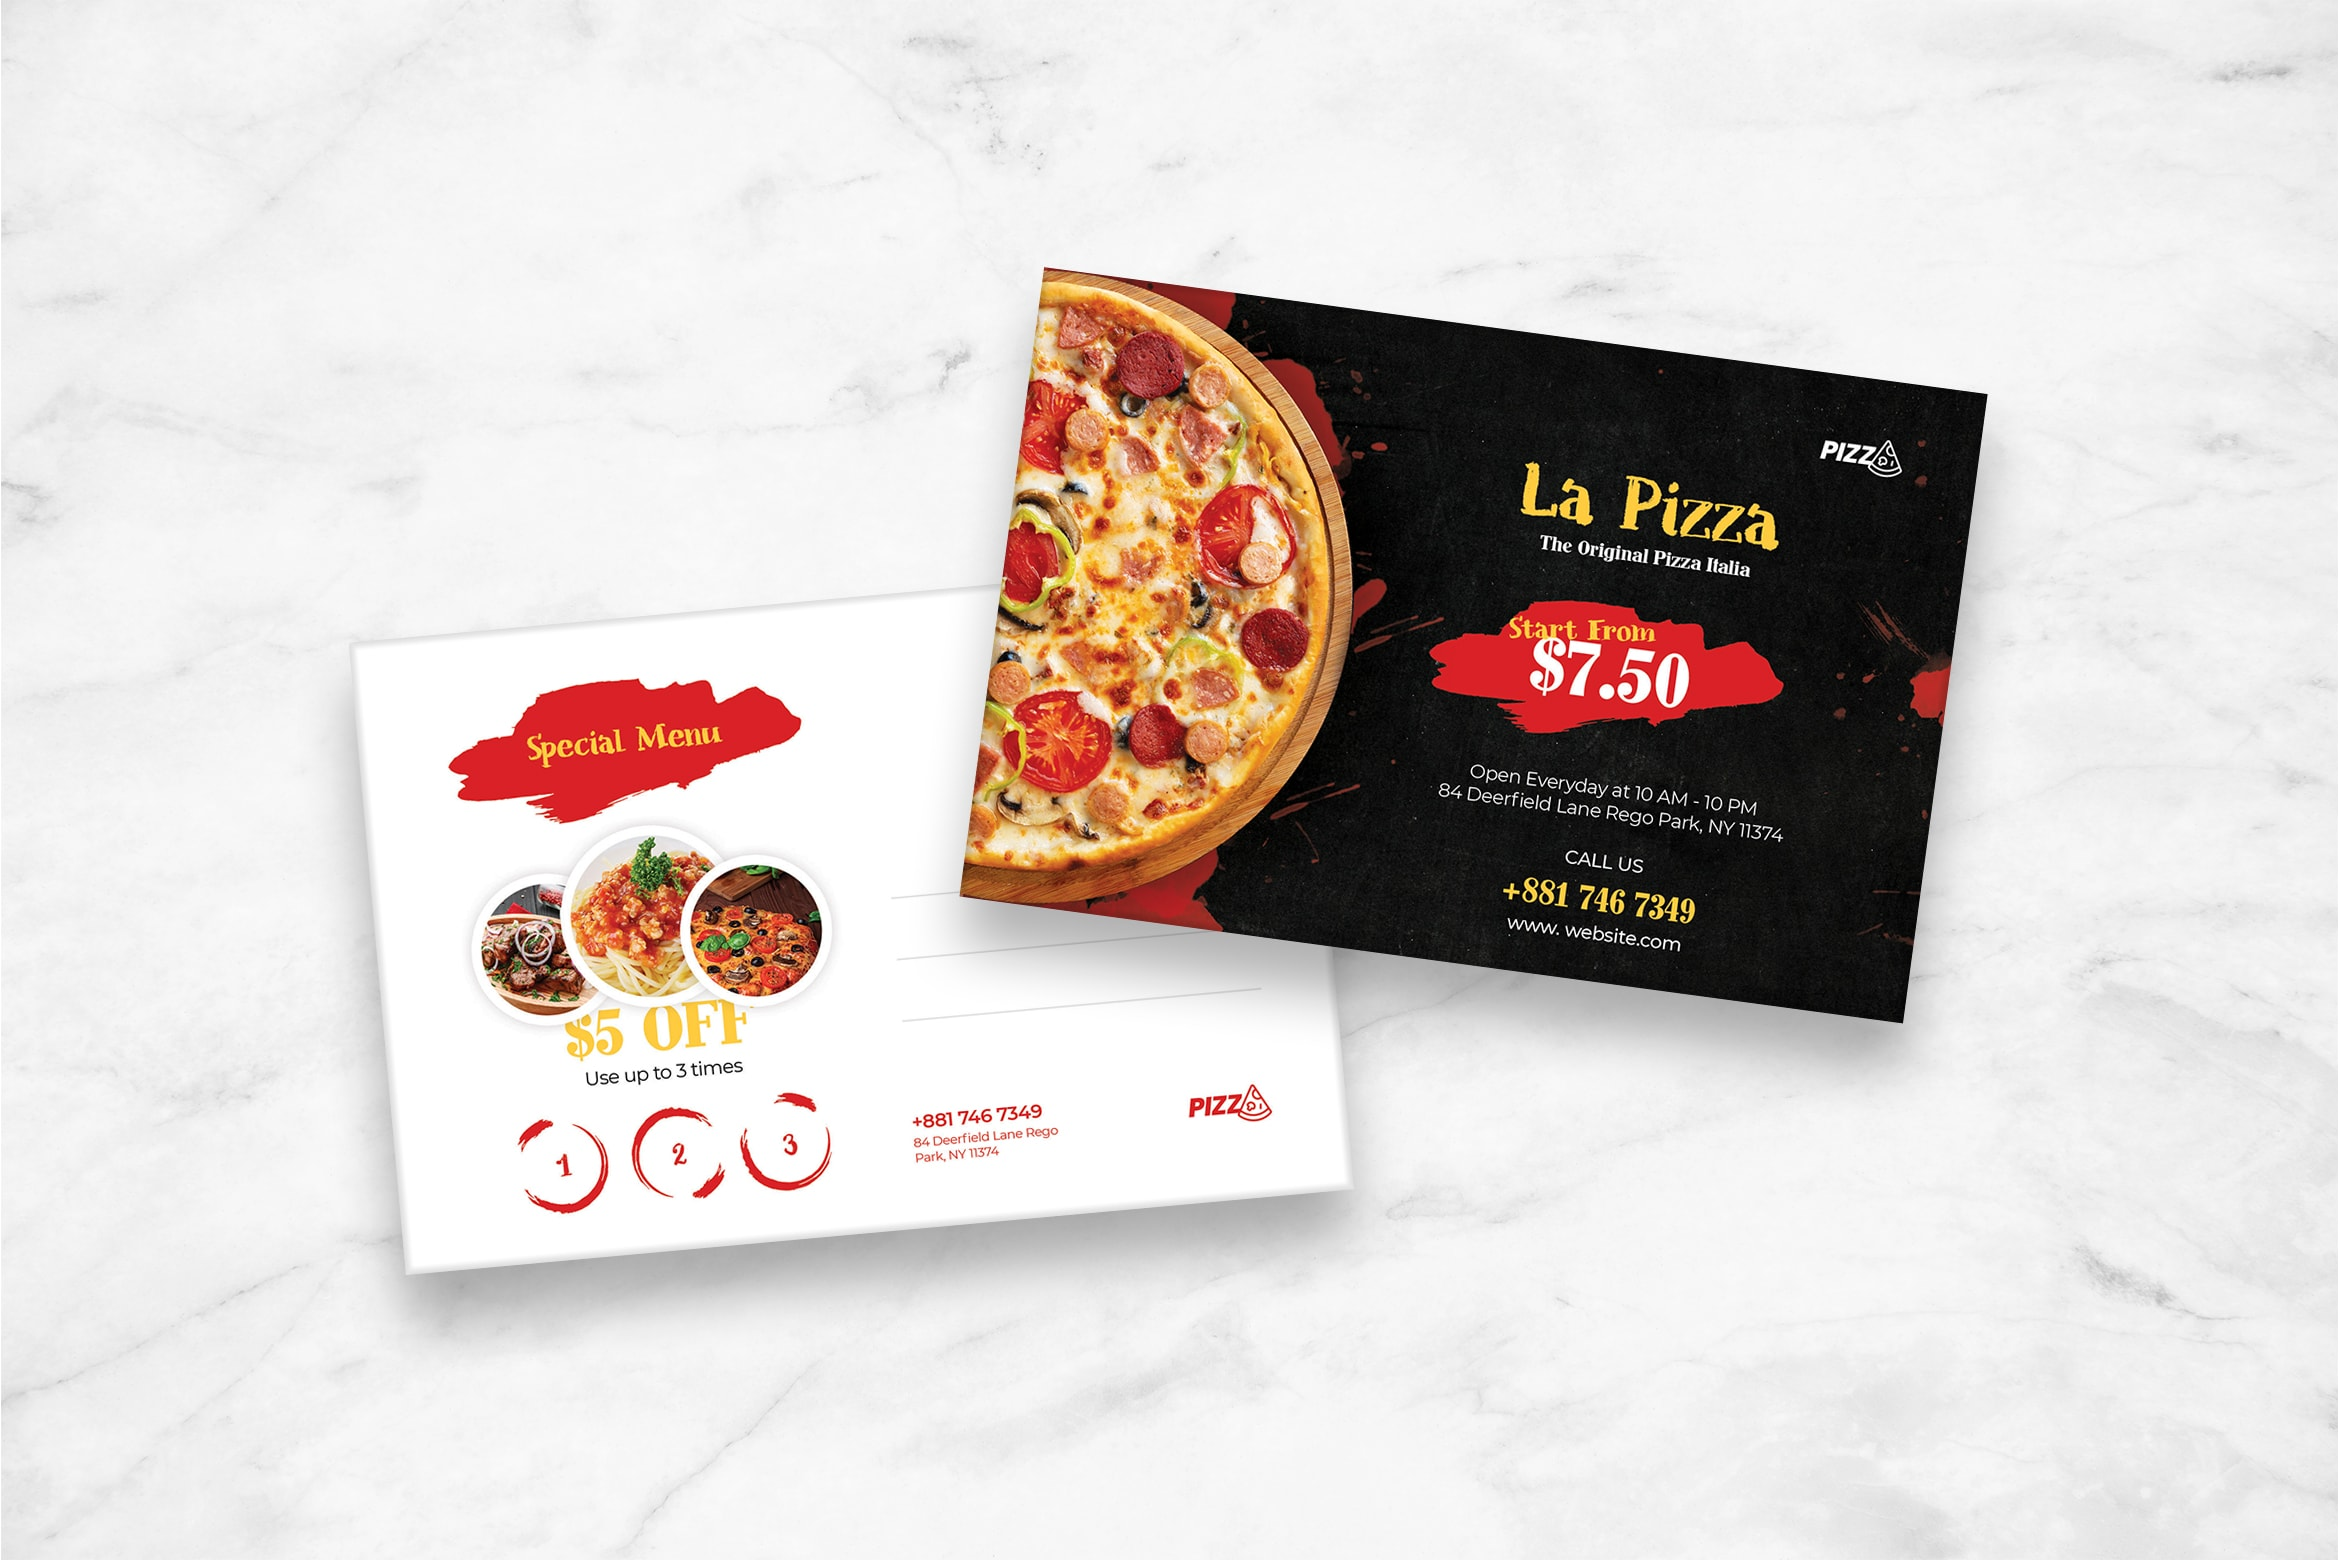 Postcard - Original Pizza